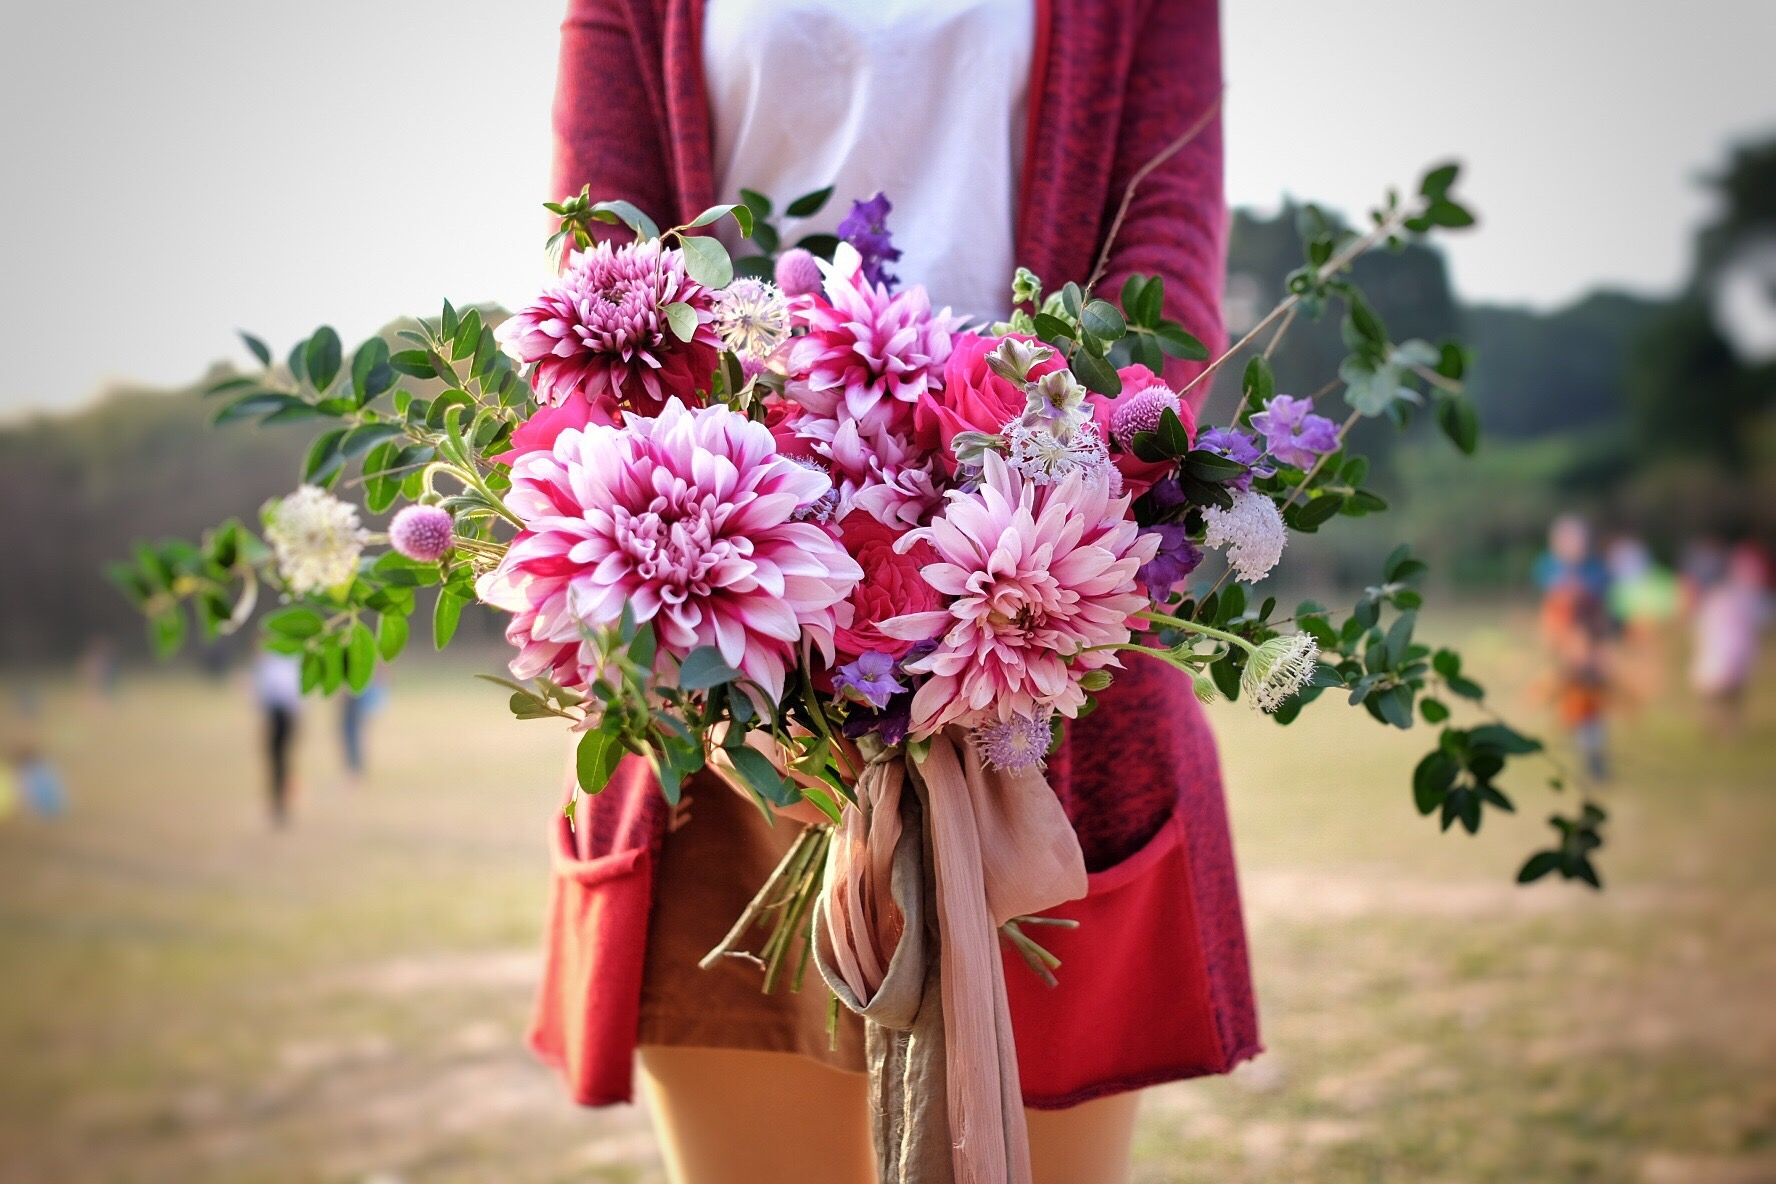 How to buy sustainable flowers this valentines day sbs life how to buy sustainable flowers this valentines day our pursuit of goodwill and affection towards humanity through the giving of cut flowers is hurting the izmirmasajfo